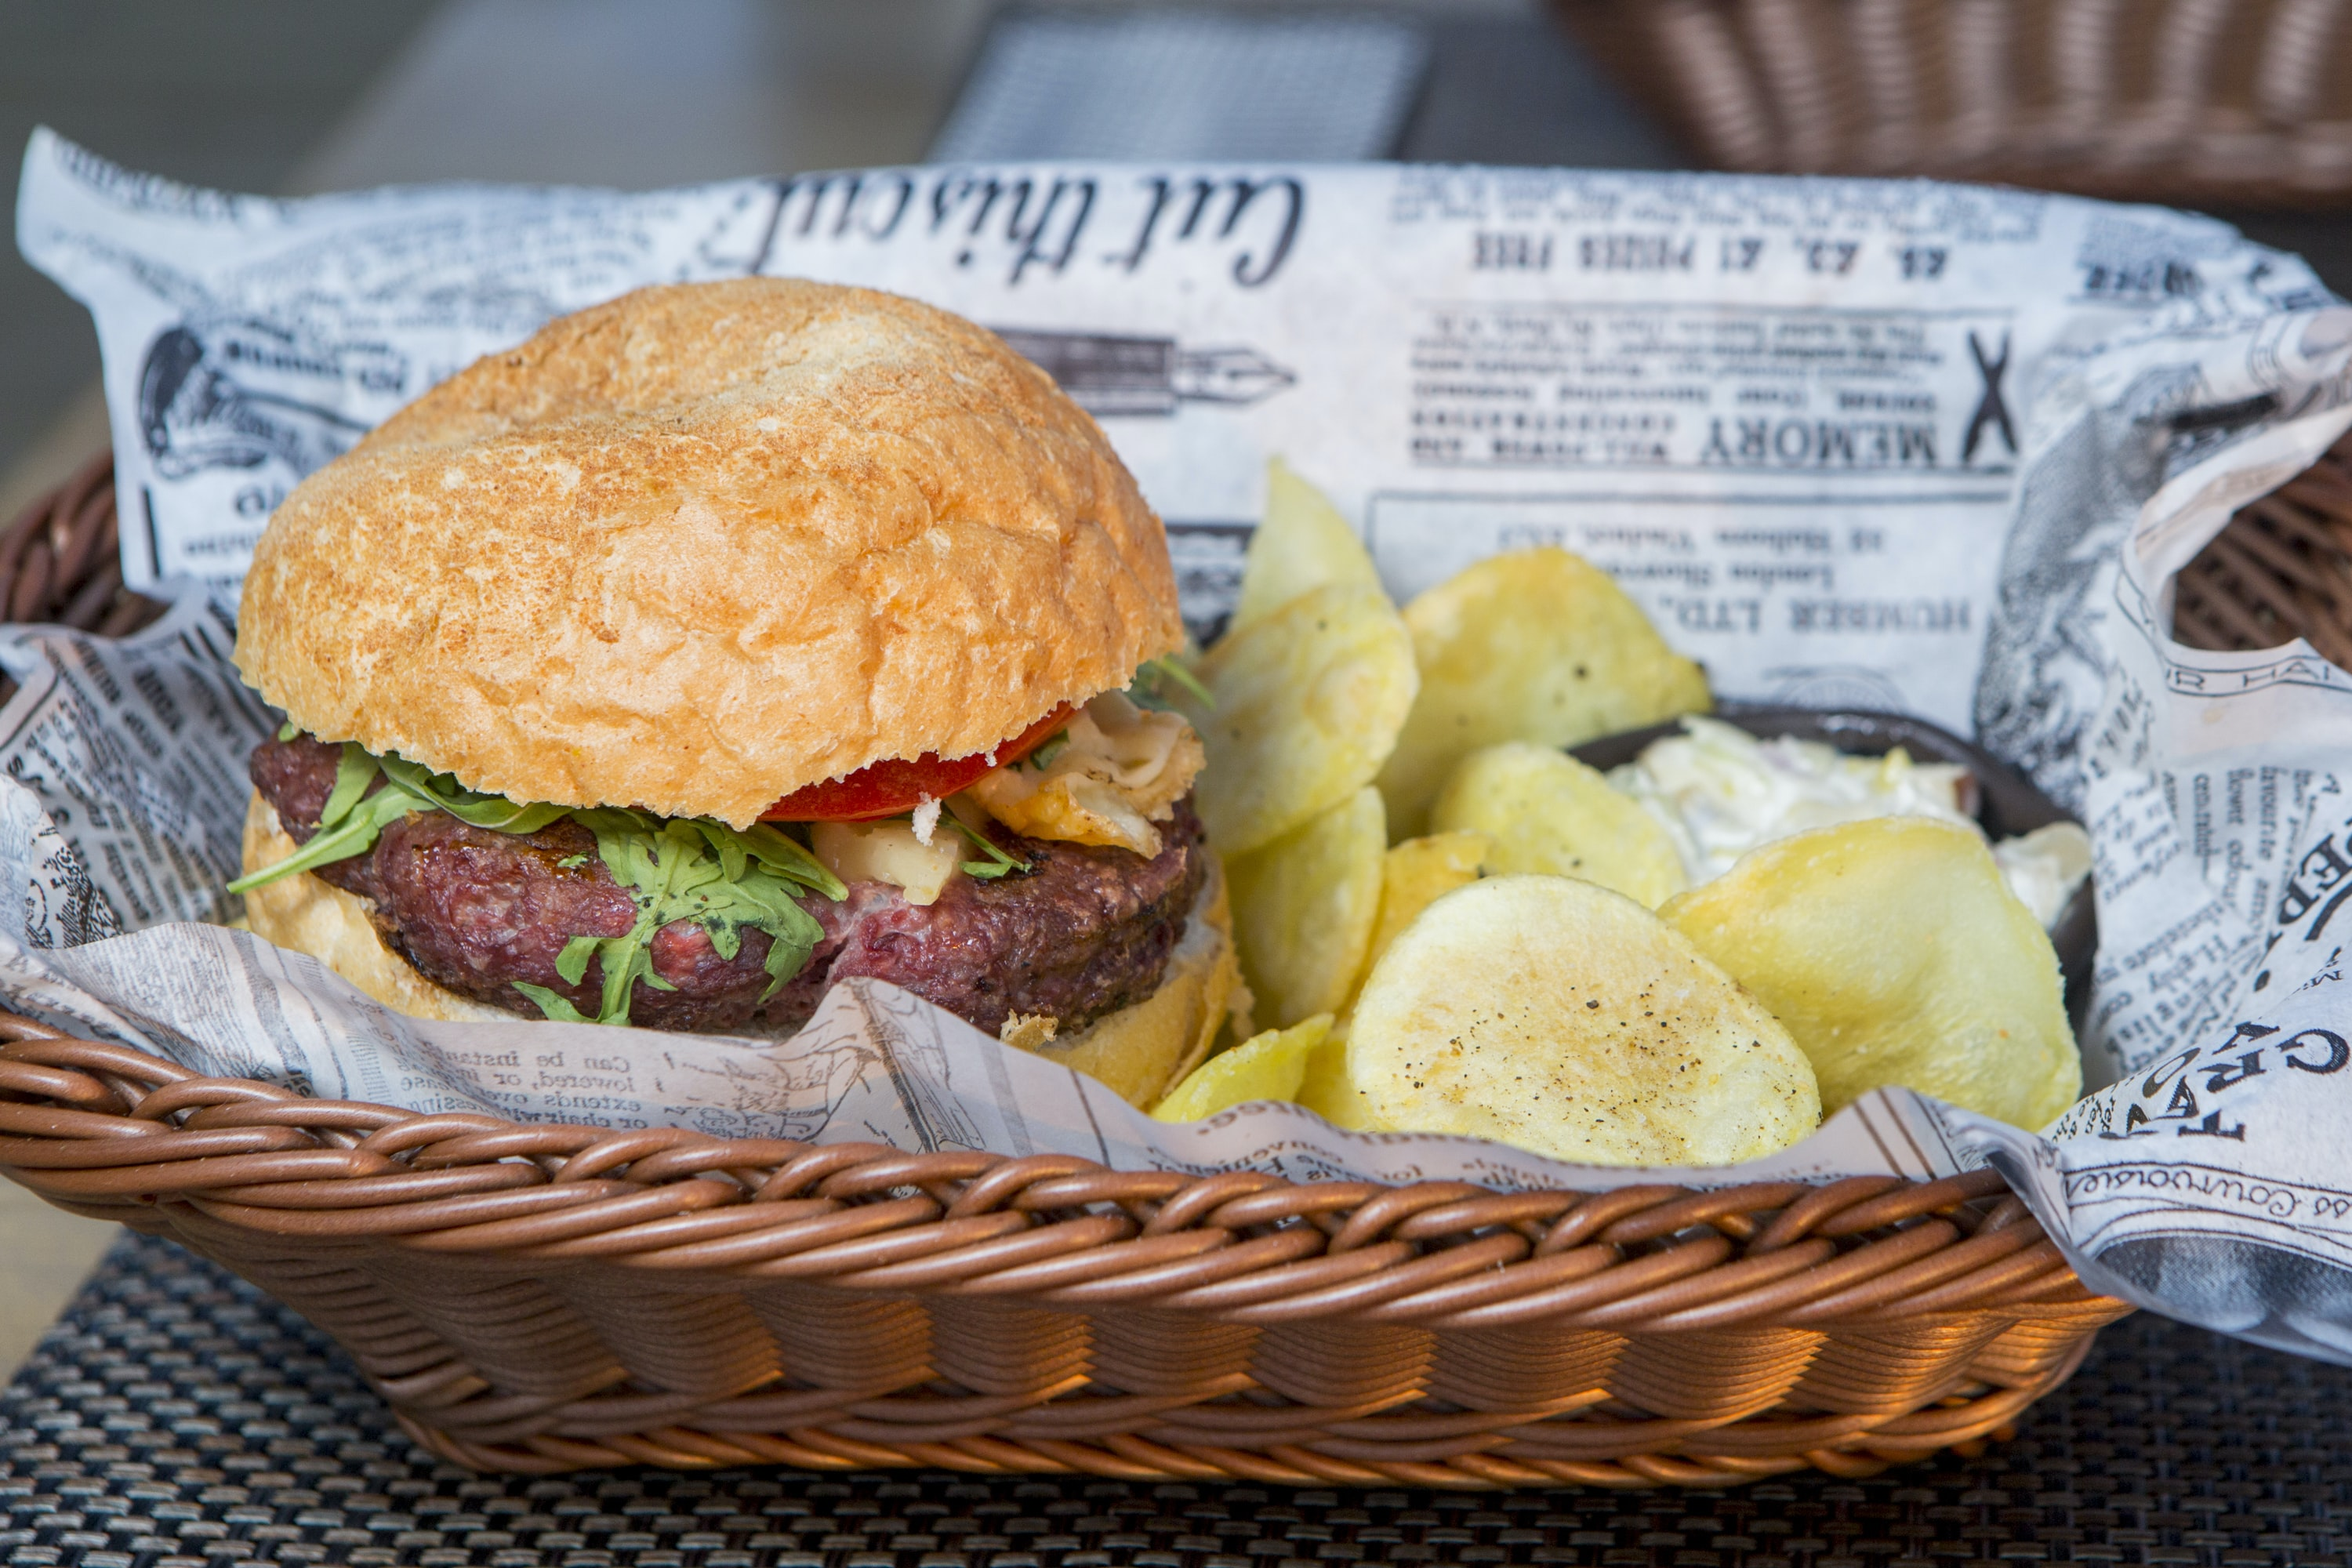 Hamburger and potato chips in a basket with newspaper lining